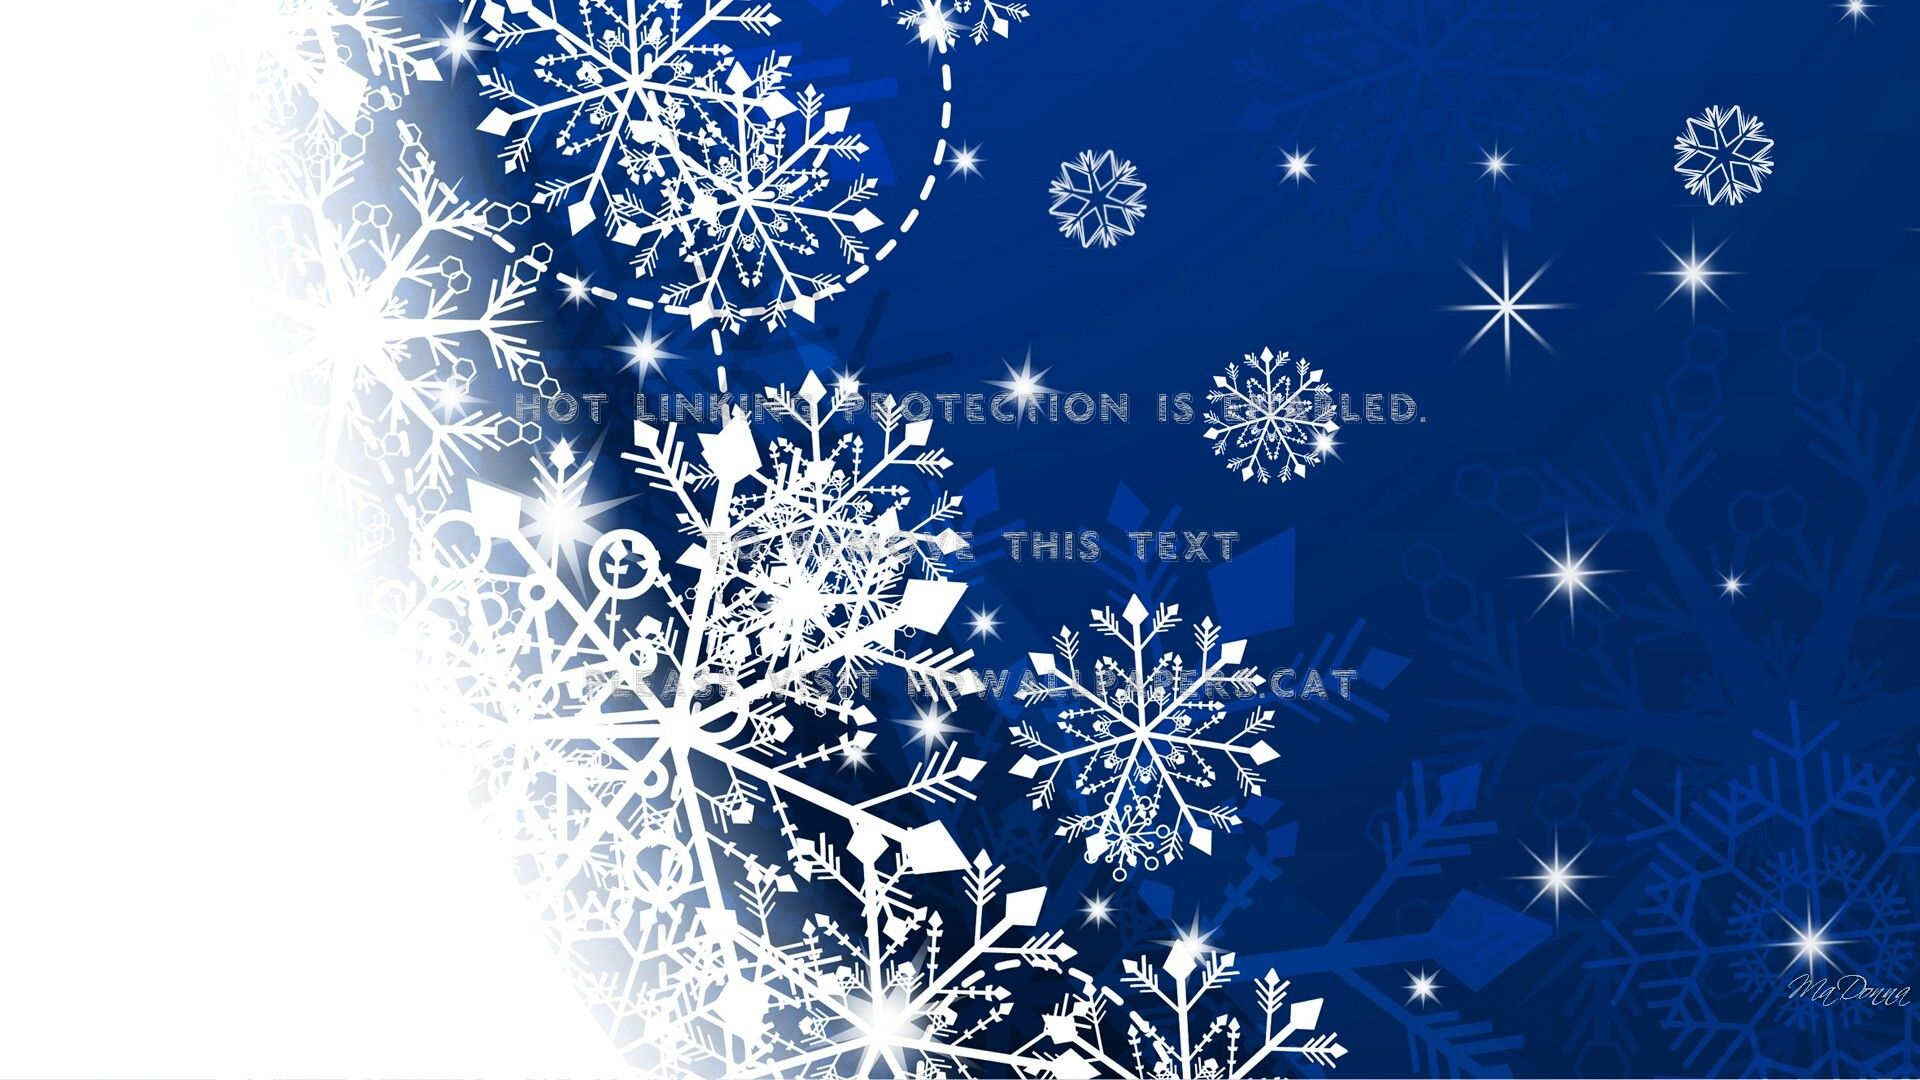 New Year With Snowflakes HD Wallpaper